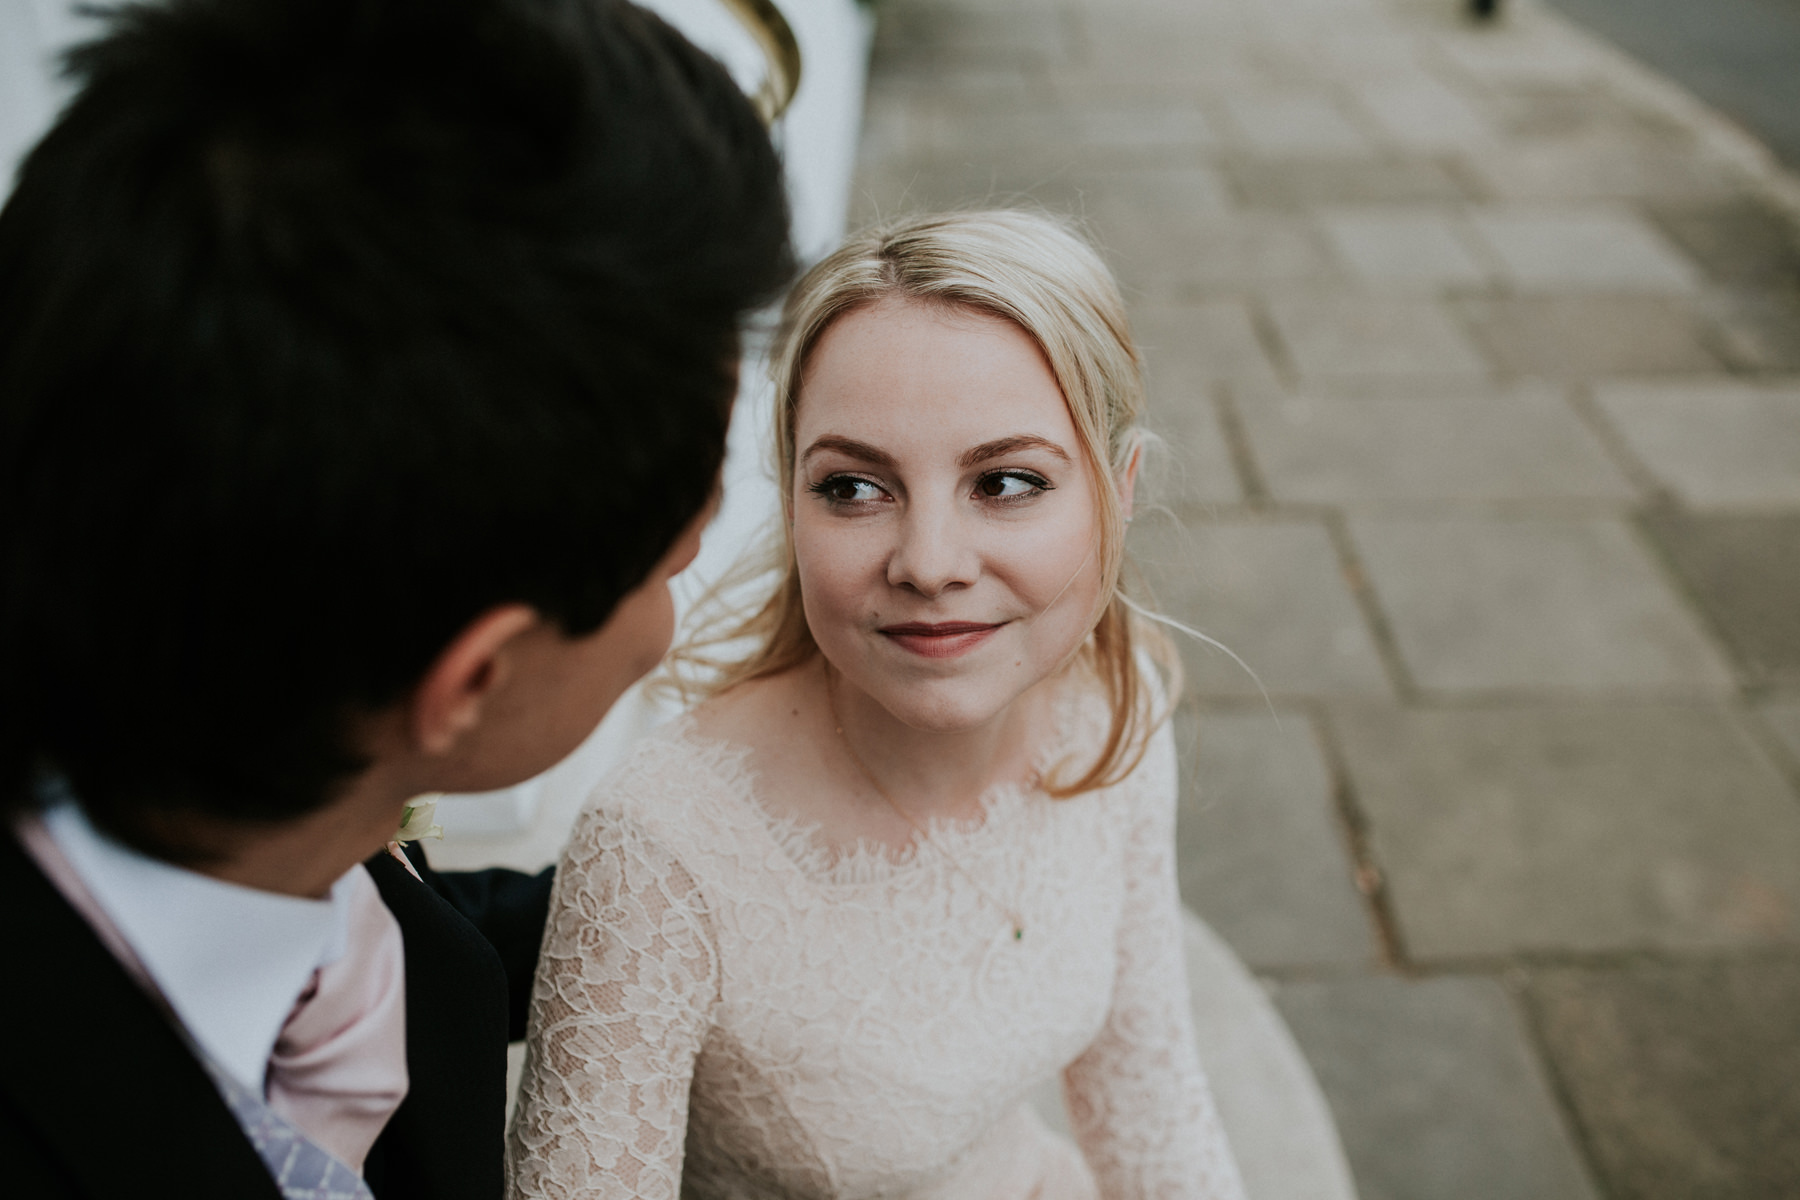 LD-398-bride-groom-couple-portraits-clapham-London-wedding-photography.jpg